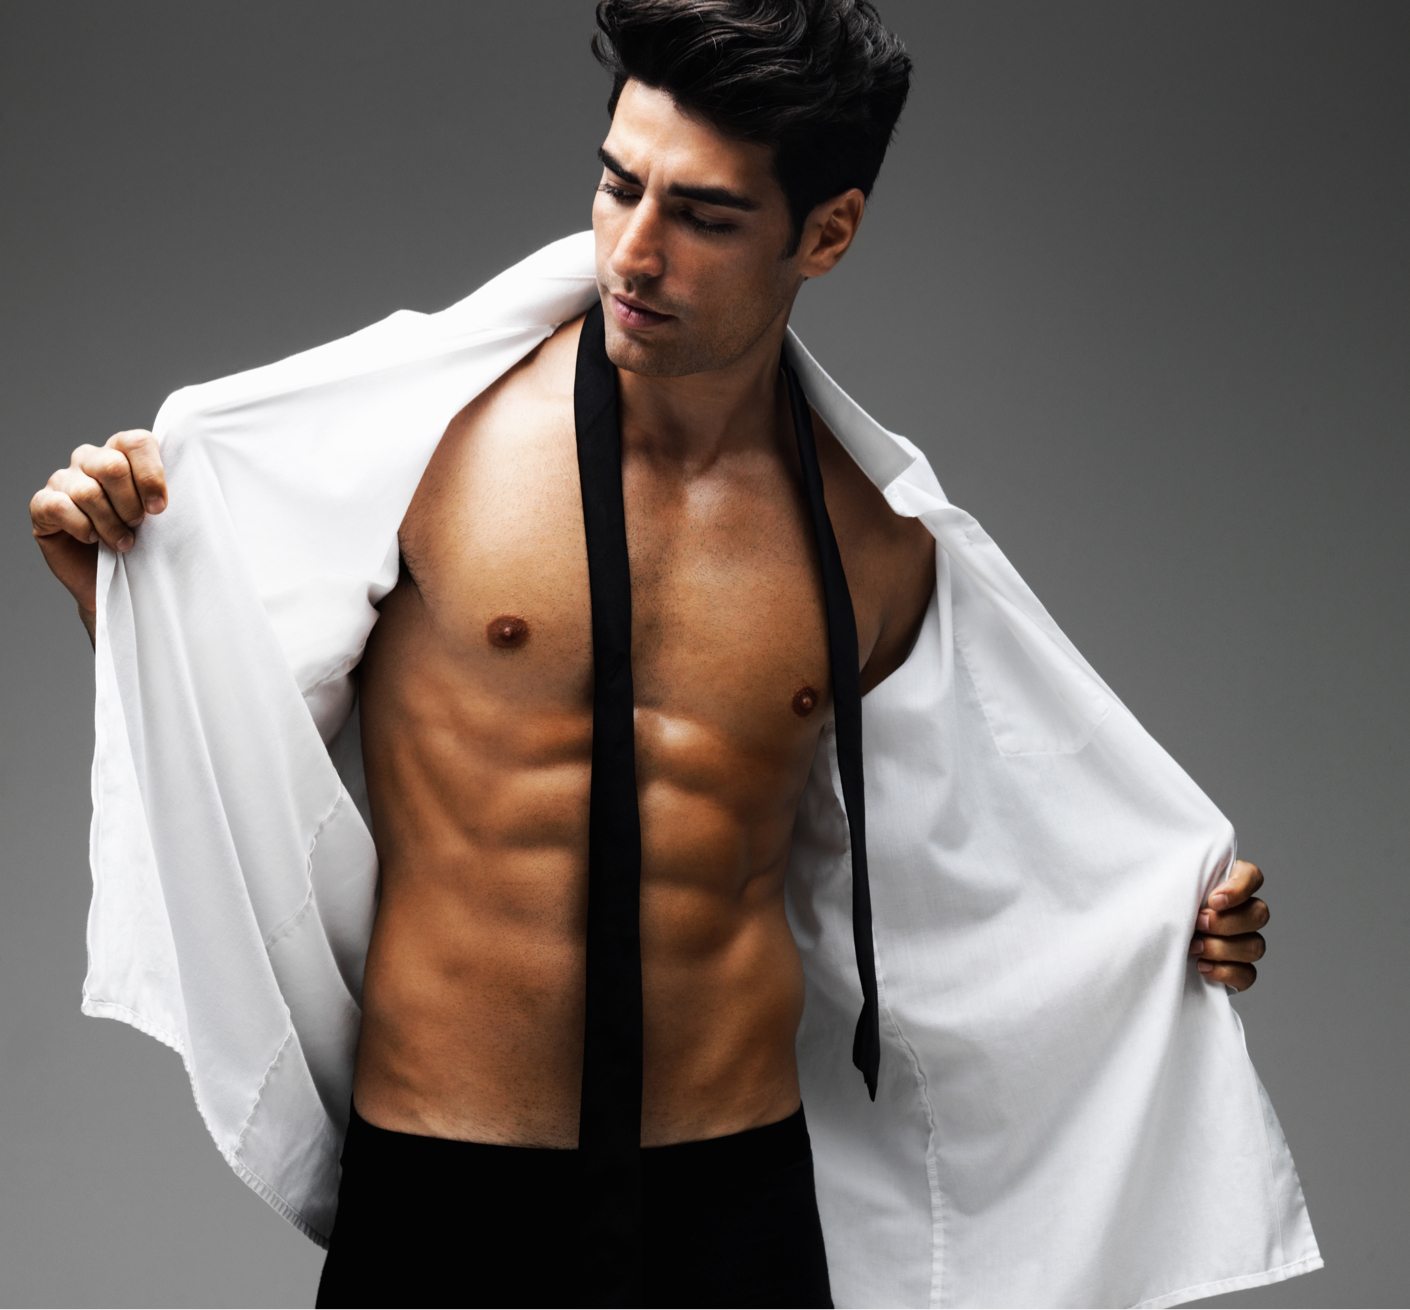 male model taking off dress shirt